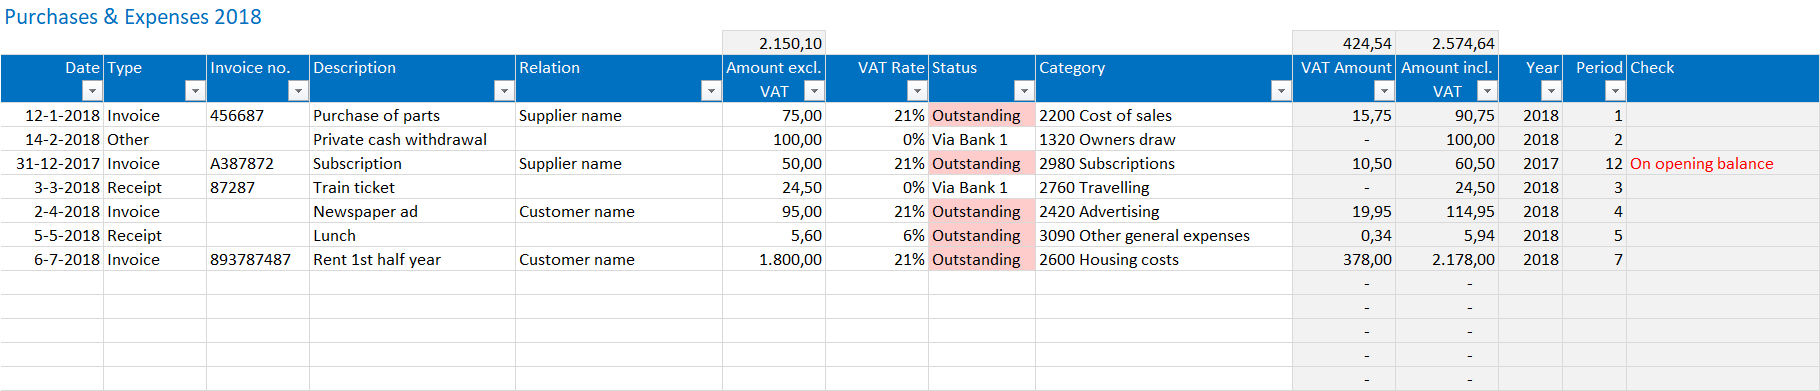 excel bookkeeping template purchases and expenses